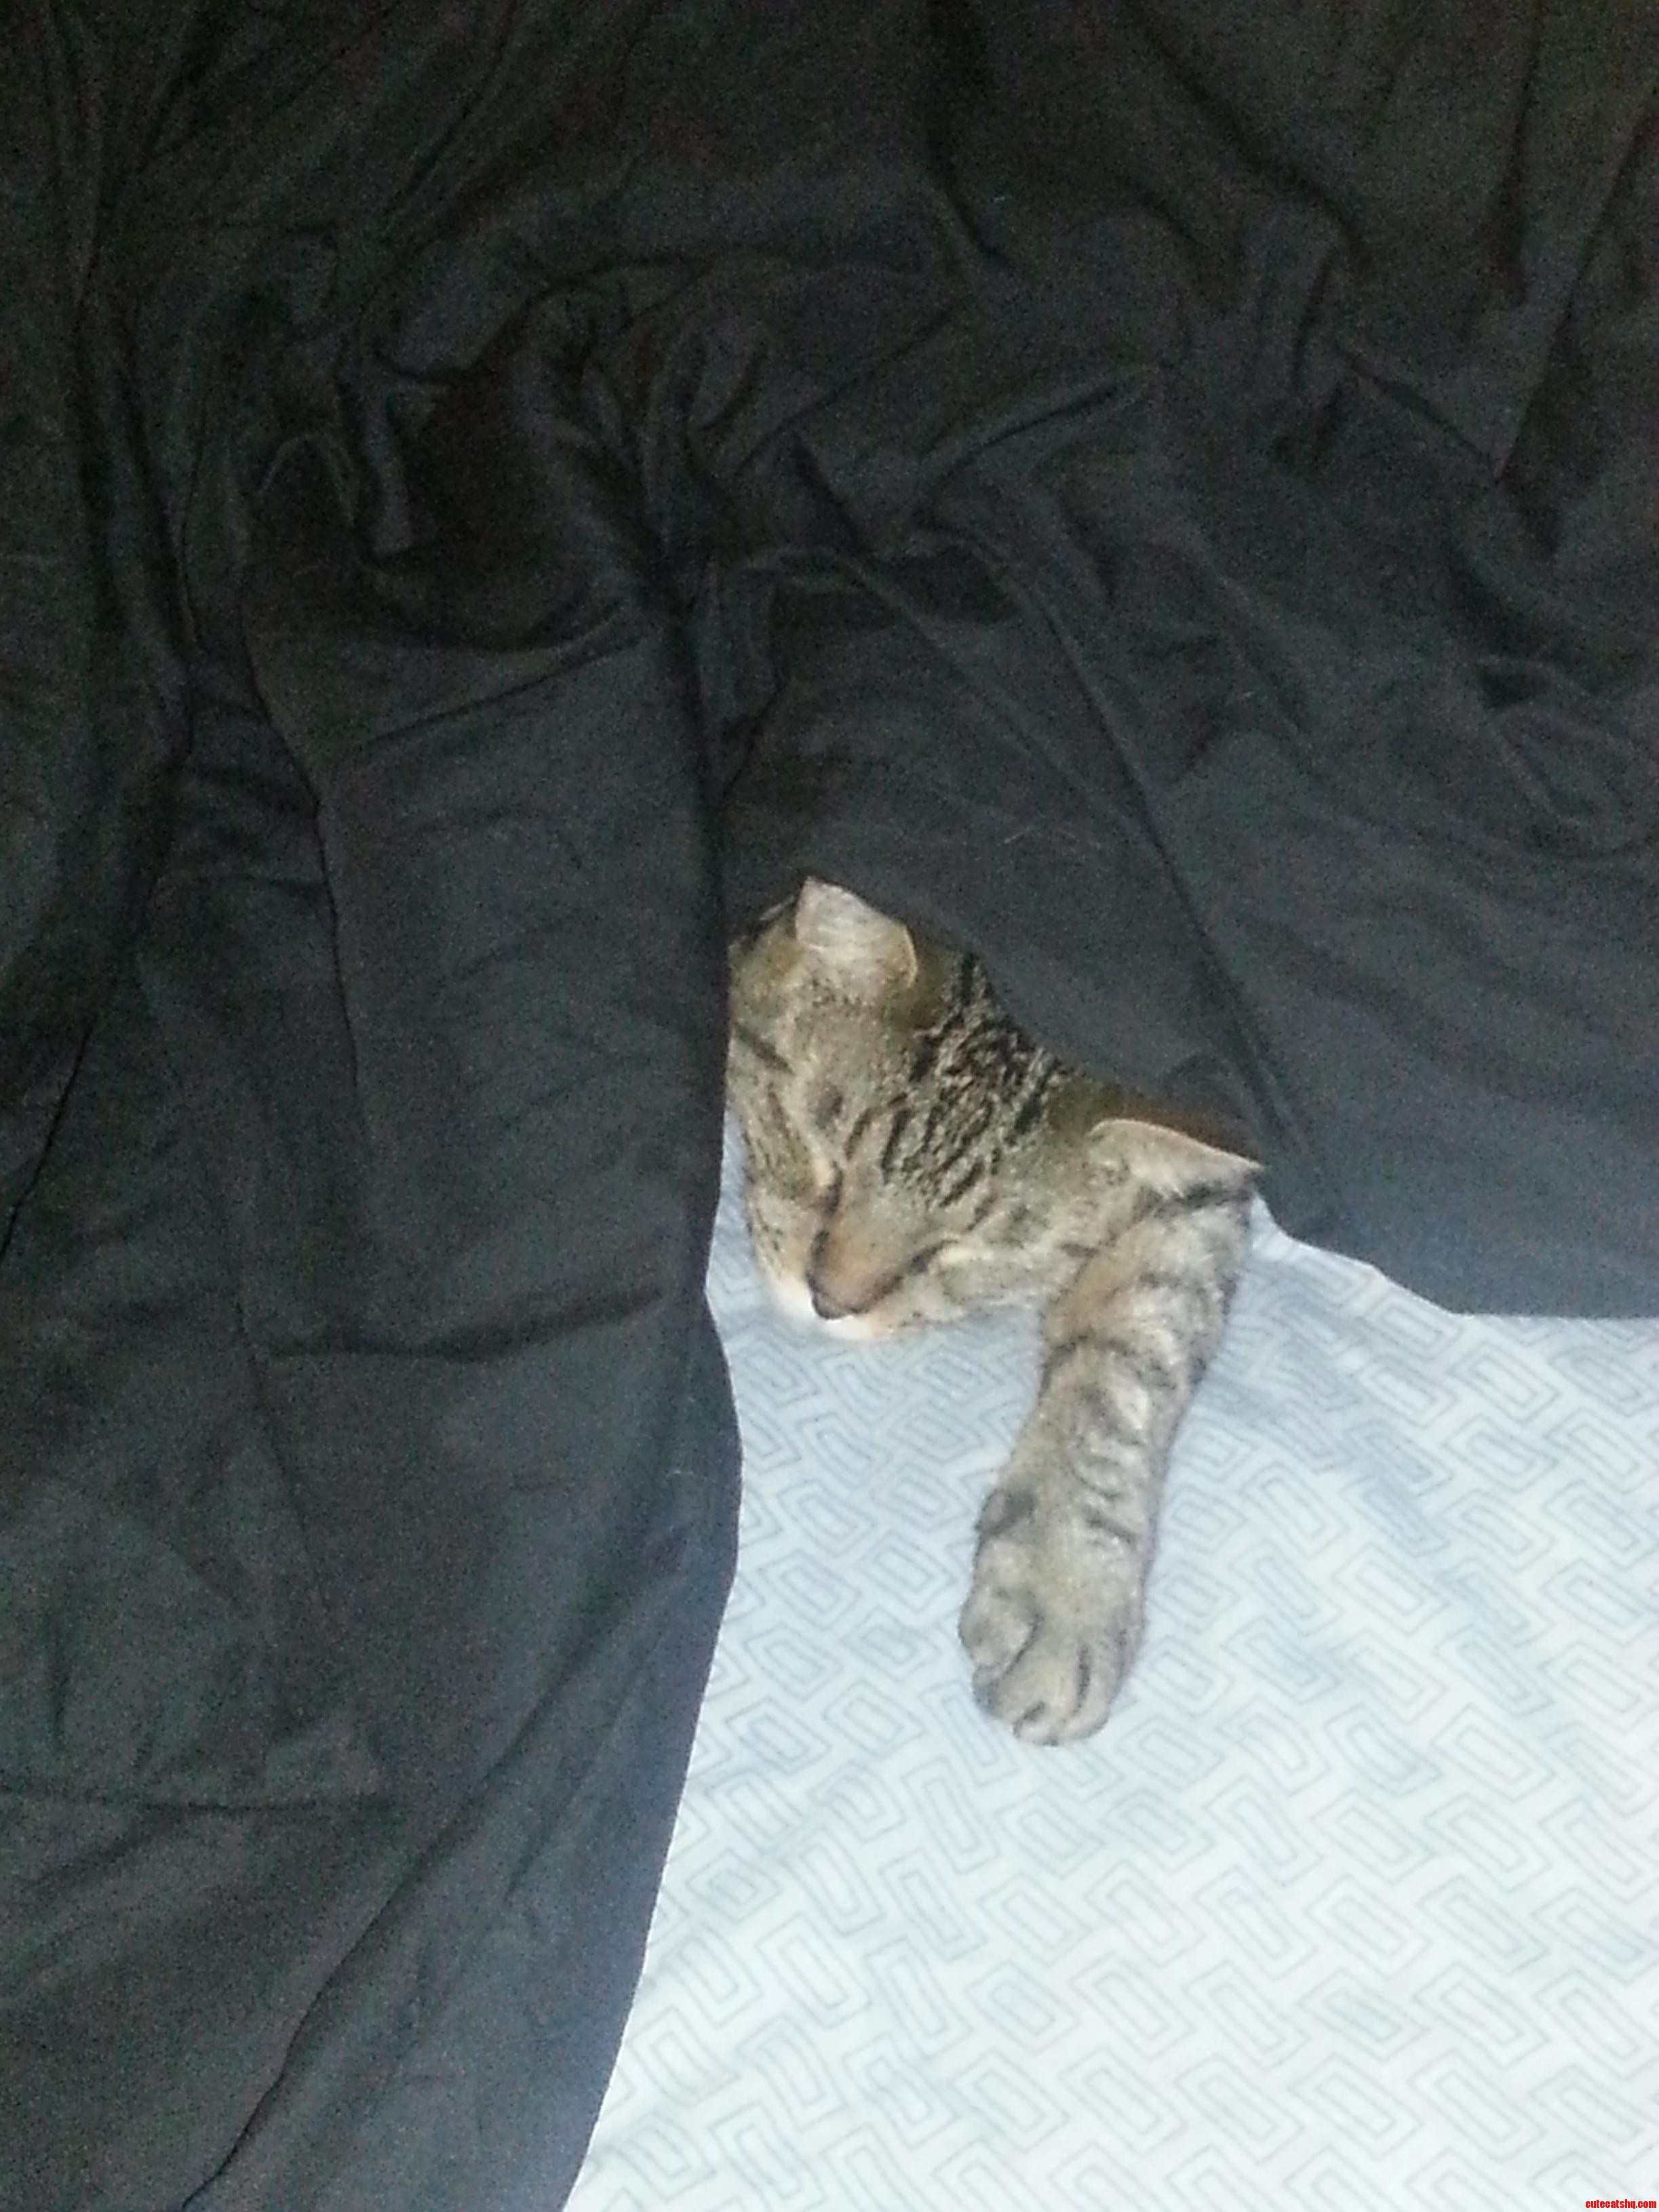 He Thinks No One Can See Him. My Big Scardey Cat Gizmo.